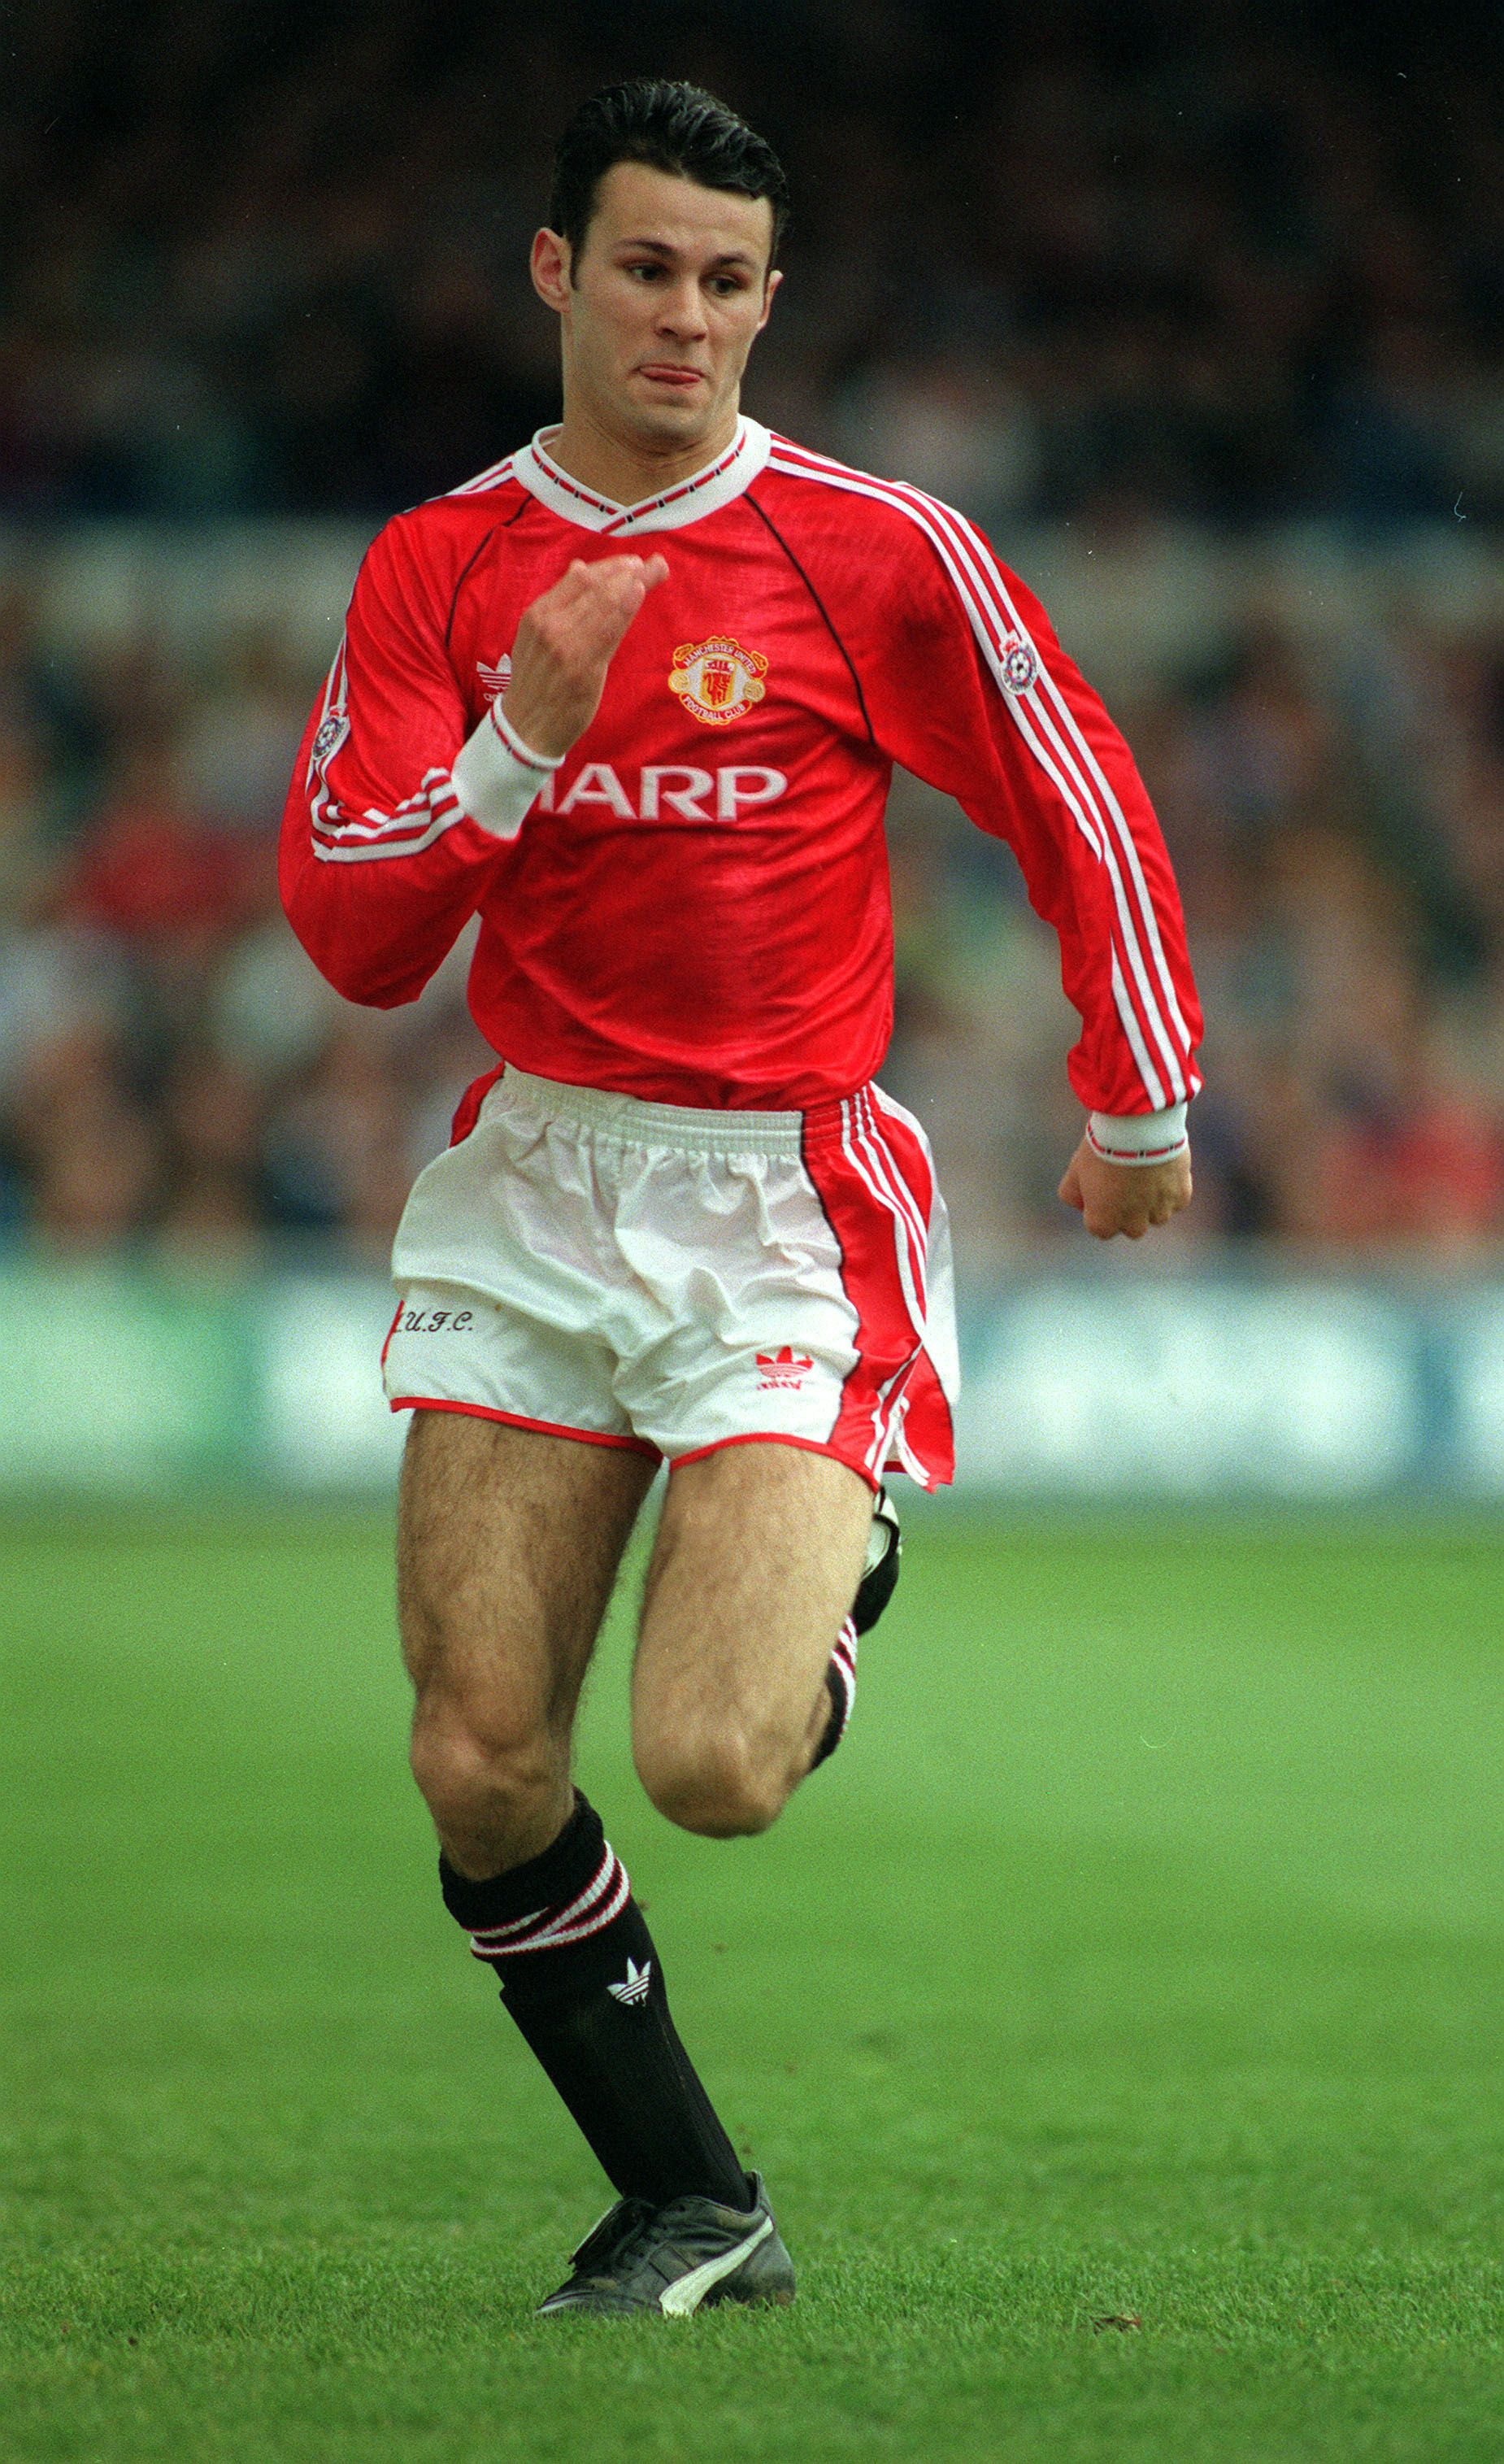 Pin By Jorge Fabiano On Lendas Do Futebol In 2020 With Images Ryan Giggs Manchester United Manchester United Legends